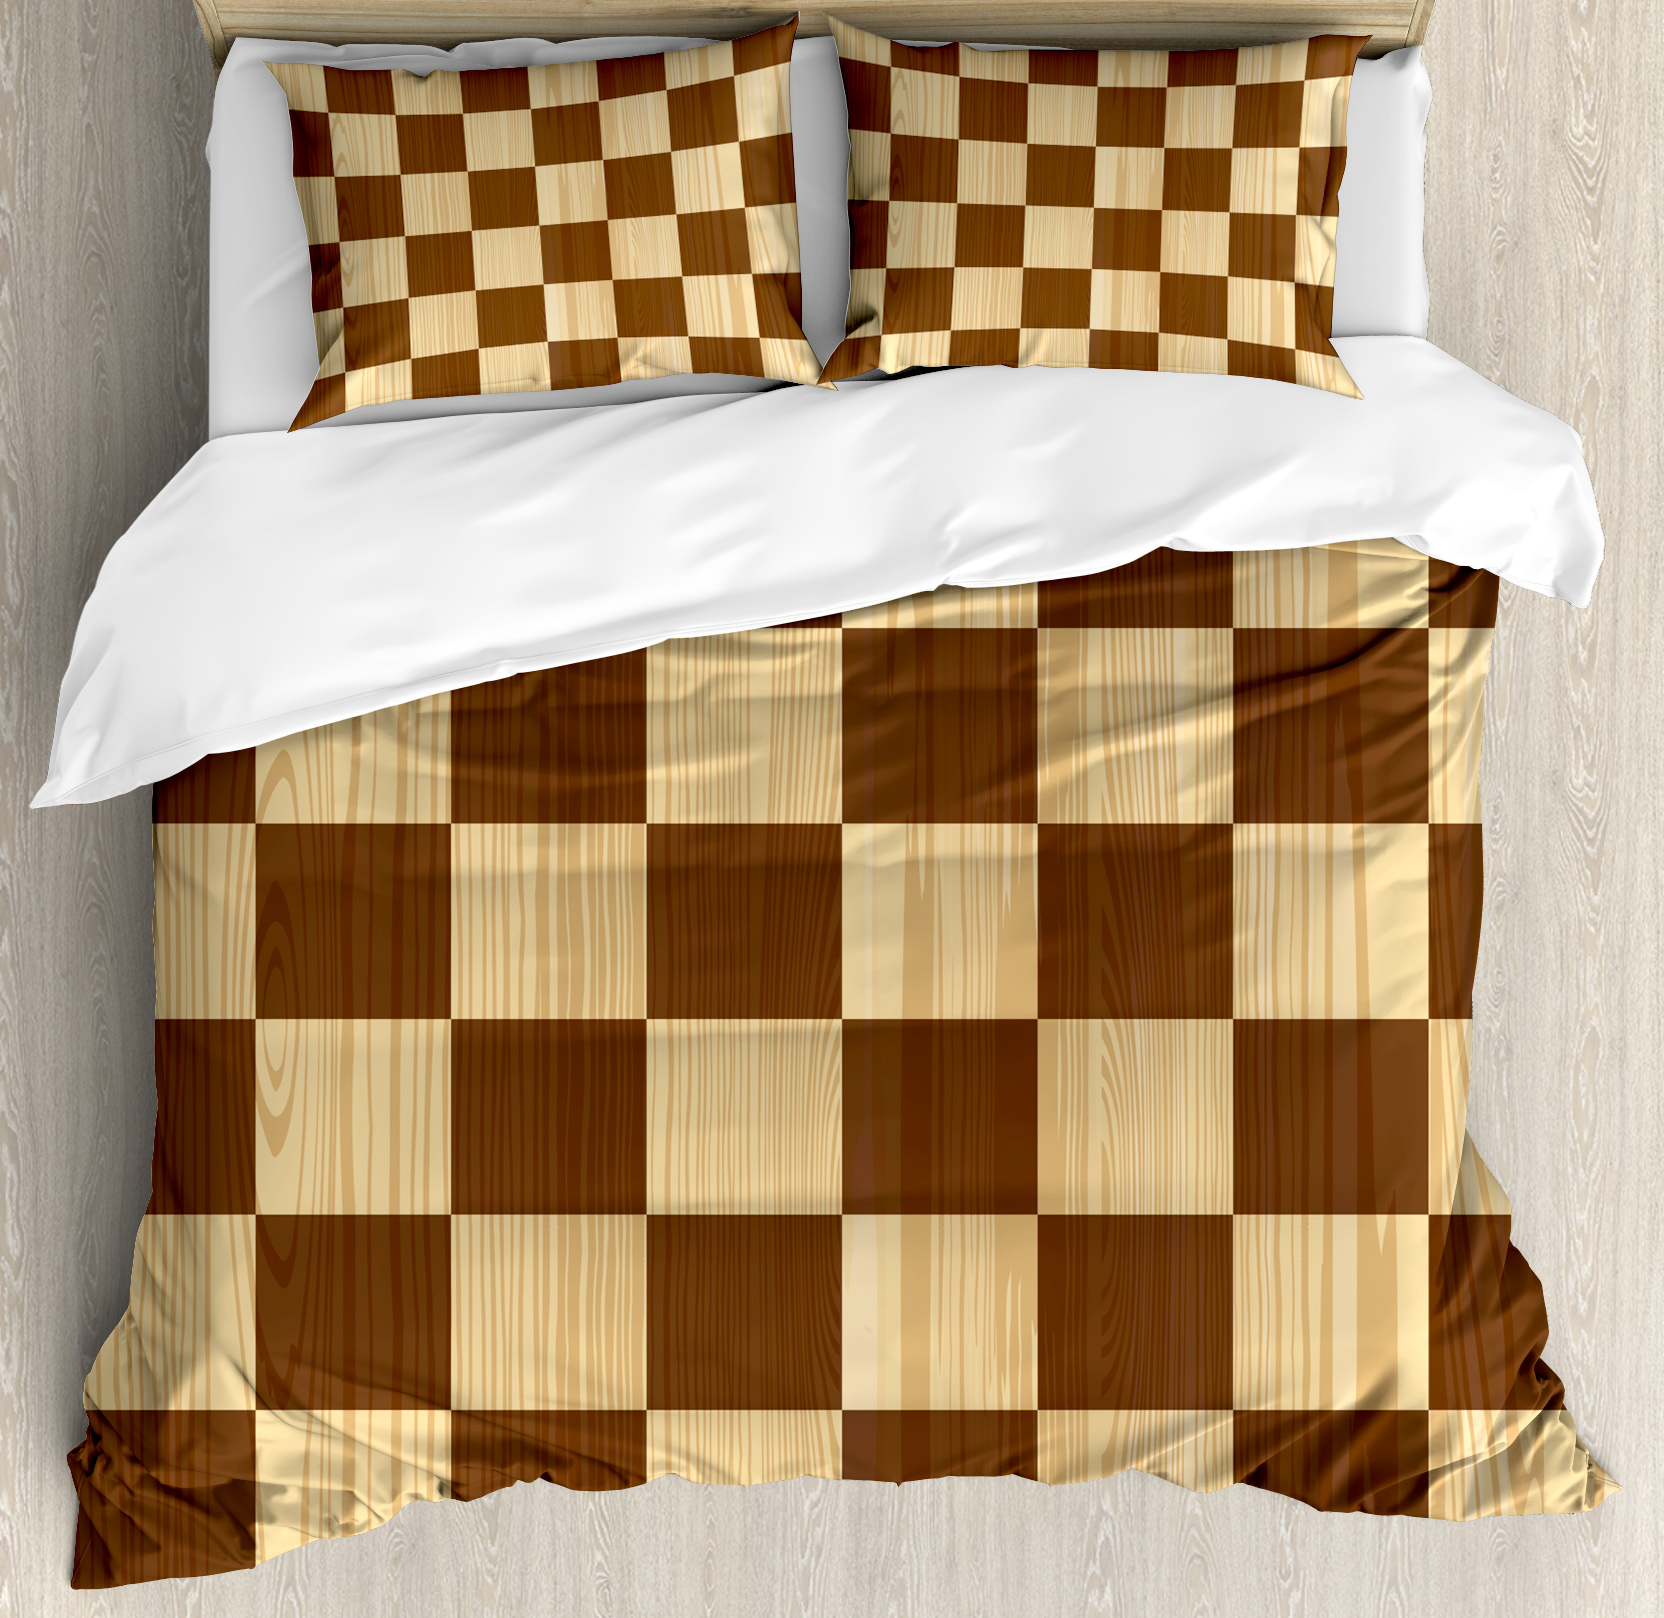 Checkered King Size Duvet Cover Set, Empty Checkerboard Wooden Seem Mosaic Texture Image Chess Game Hobby Theme, Decorative 3 Piece Bedding Set with 2 Pillow Shams, Brown Pale Brown, by Ambesonne